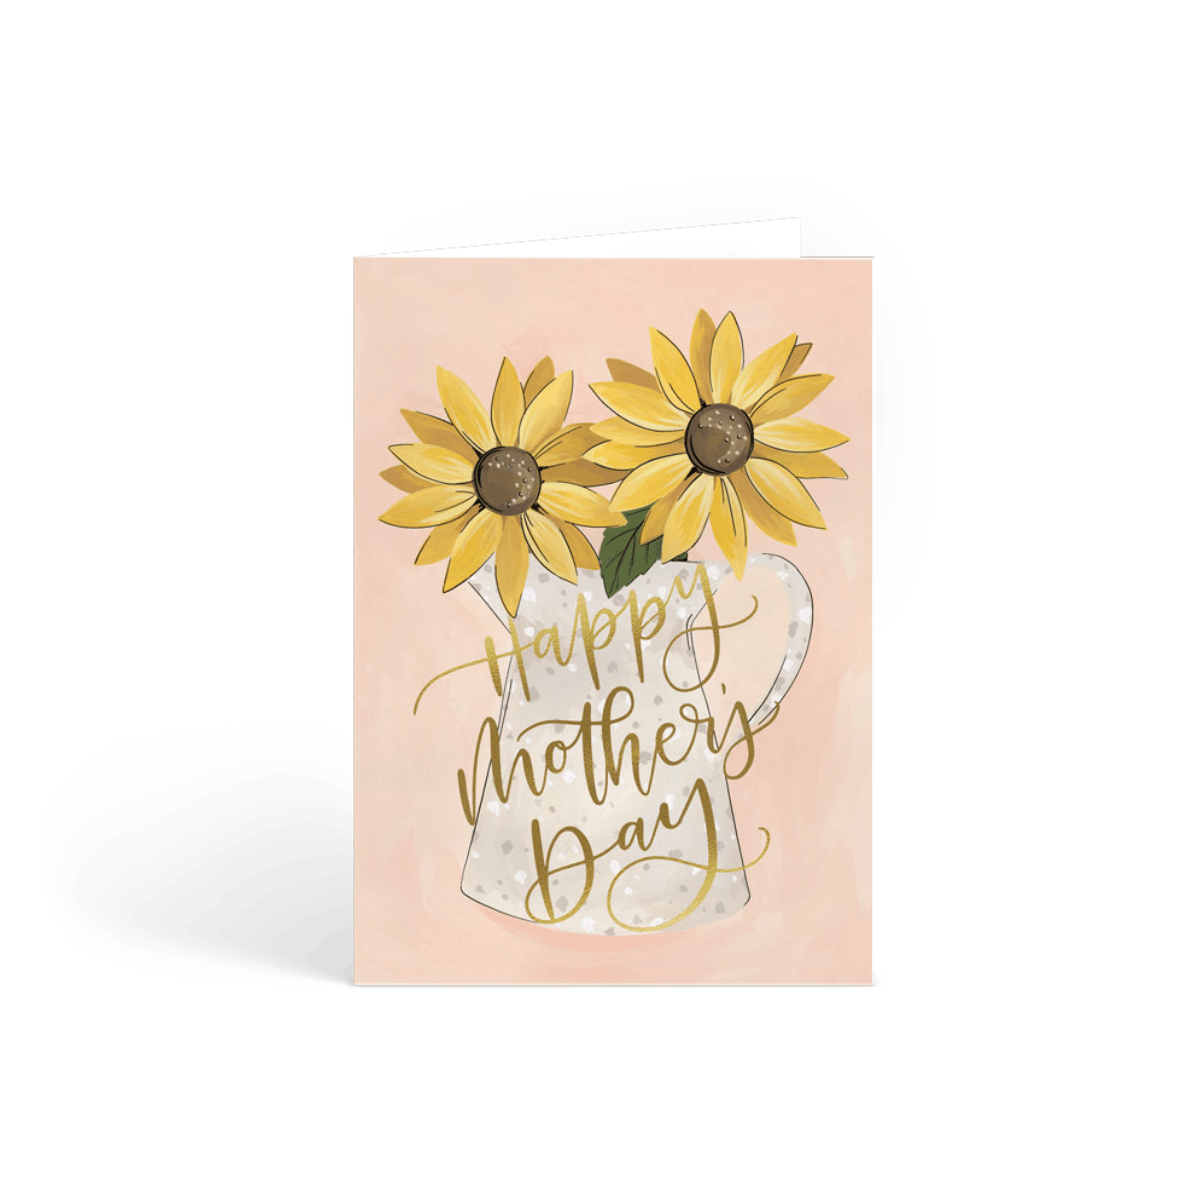 Https%3a%2f%2fwww.papier.com%2fproduct image%2f63056%2f2%2fmother s day sunflowers 14878 front 1580755878.png?ixlib=rb 1.1